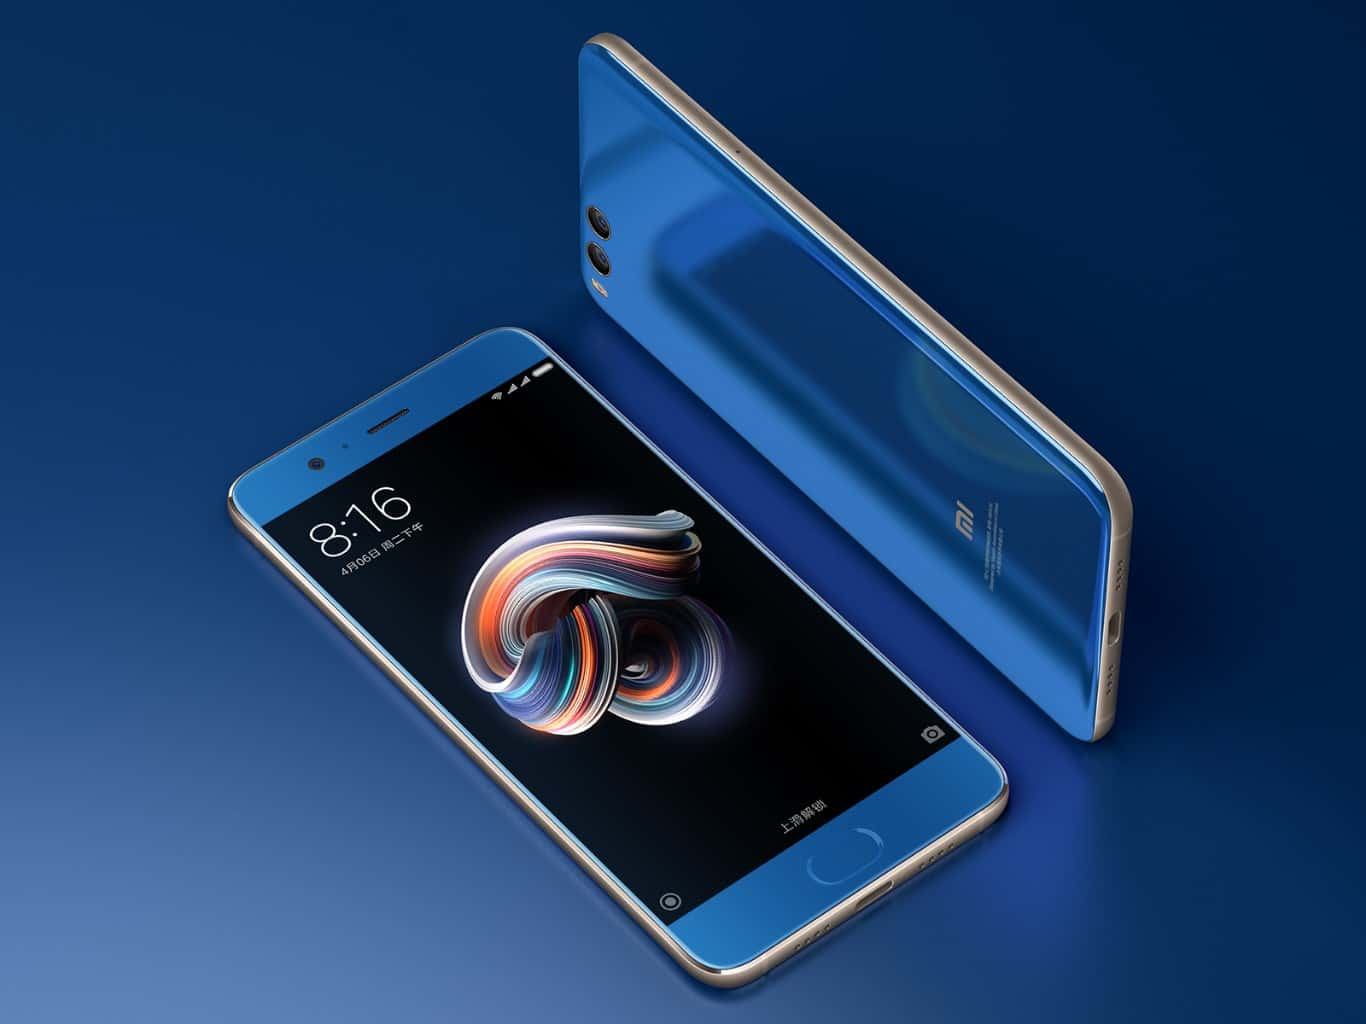 Xiaomi Mi Note 3 4G Phablet Comes With 16 MP Selfie Camera